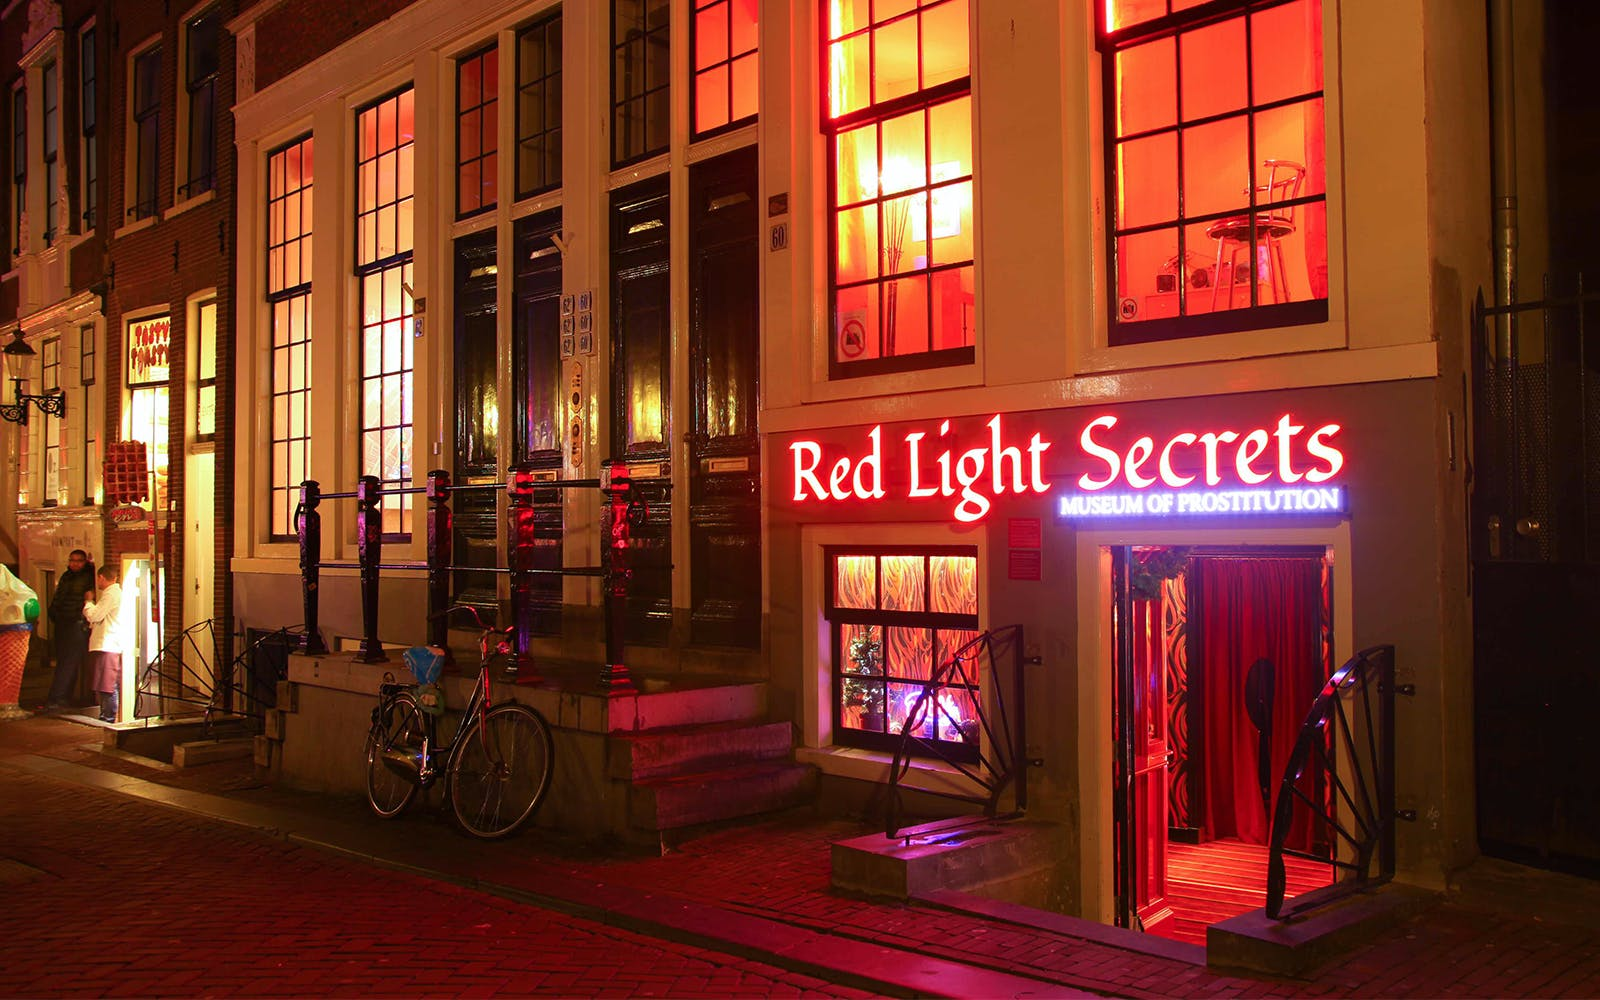 red light secrets & 1 hour canal cruise-1